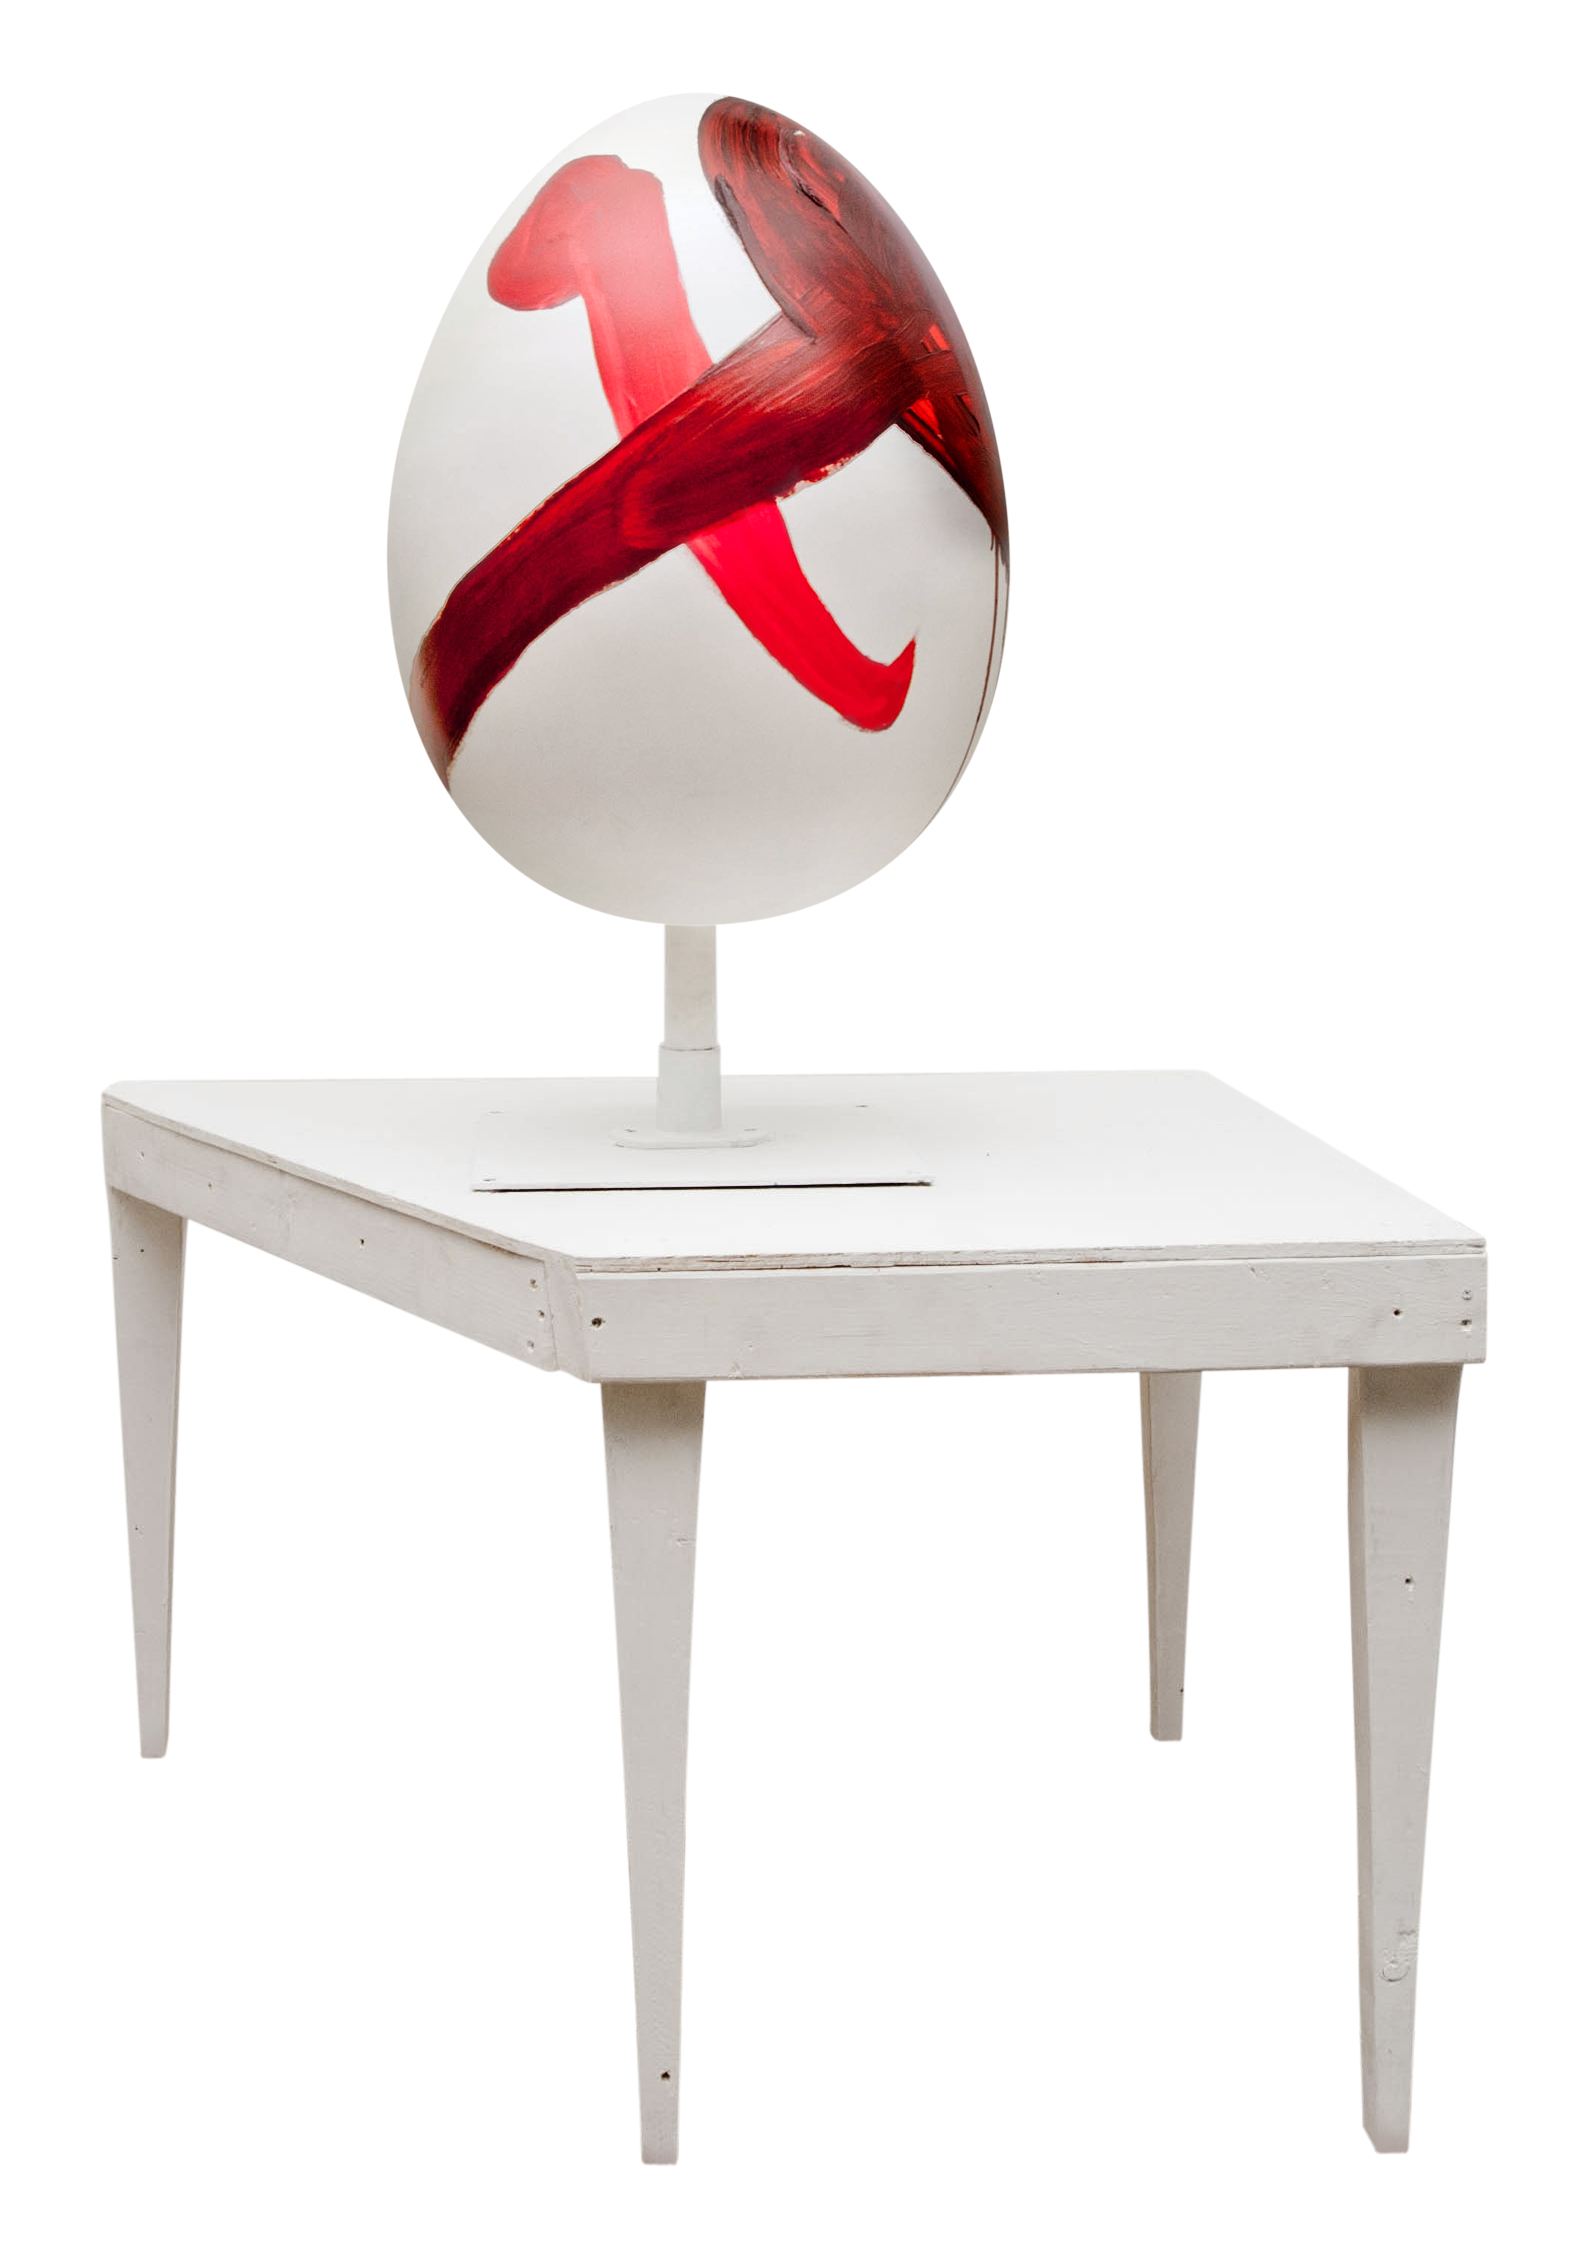 Julian Schnabel's contribution to the Big Egg Hunt